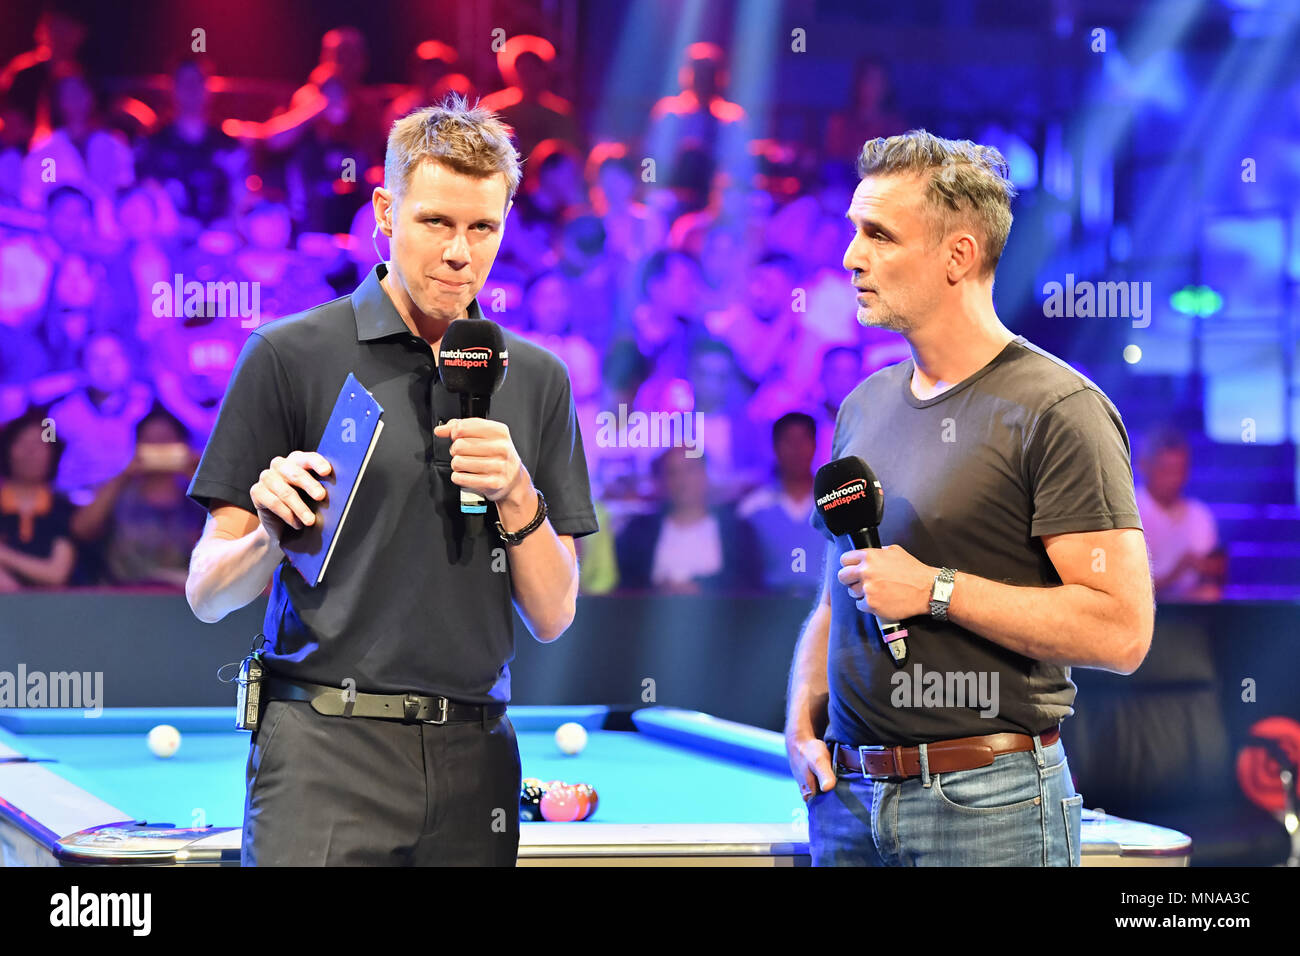 Shanghai, China. 15th May 2018. The match official presenters - Alex Lely announcing the Round 1 match between Austra vs Chile during WORLD CUP of POOL 2018: Round 1 - Austra vs Chile at Luwan (Gymnasium) Arena on Tuesday, 15 May 2018. SHANGHAI, CHINA. Credit: Taka G Wu Credit: Taka Wu/Alamy Live News - Stock Image